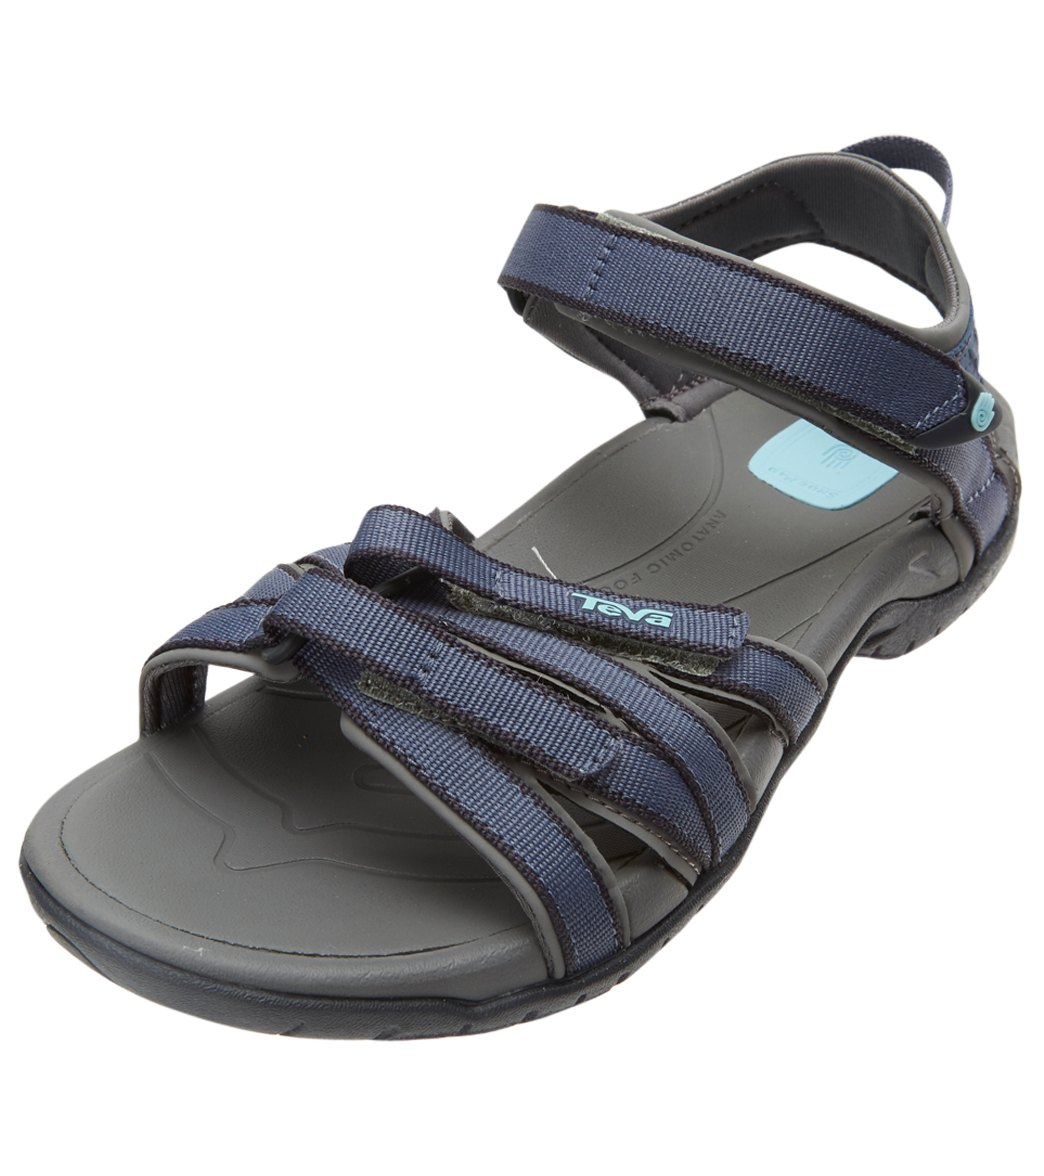 e4bb0cef21b78b Teva Women s Tirra Sandal at SwimOutlet.com - Free Shipping